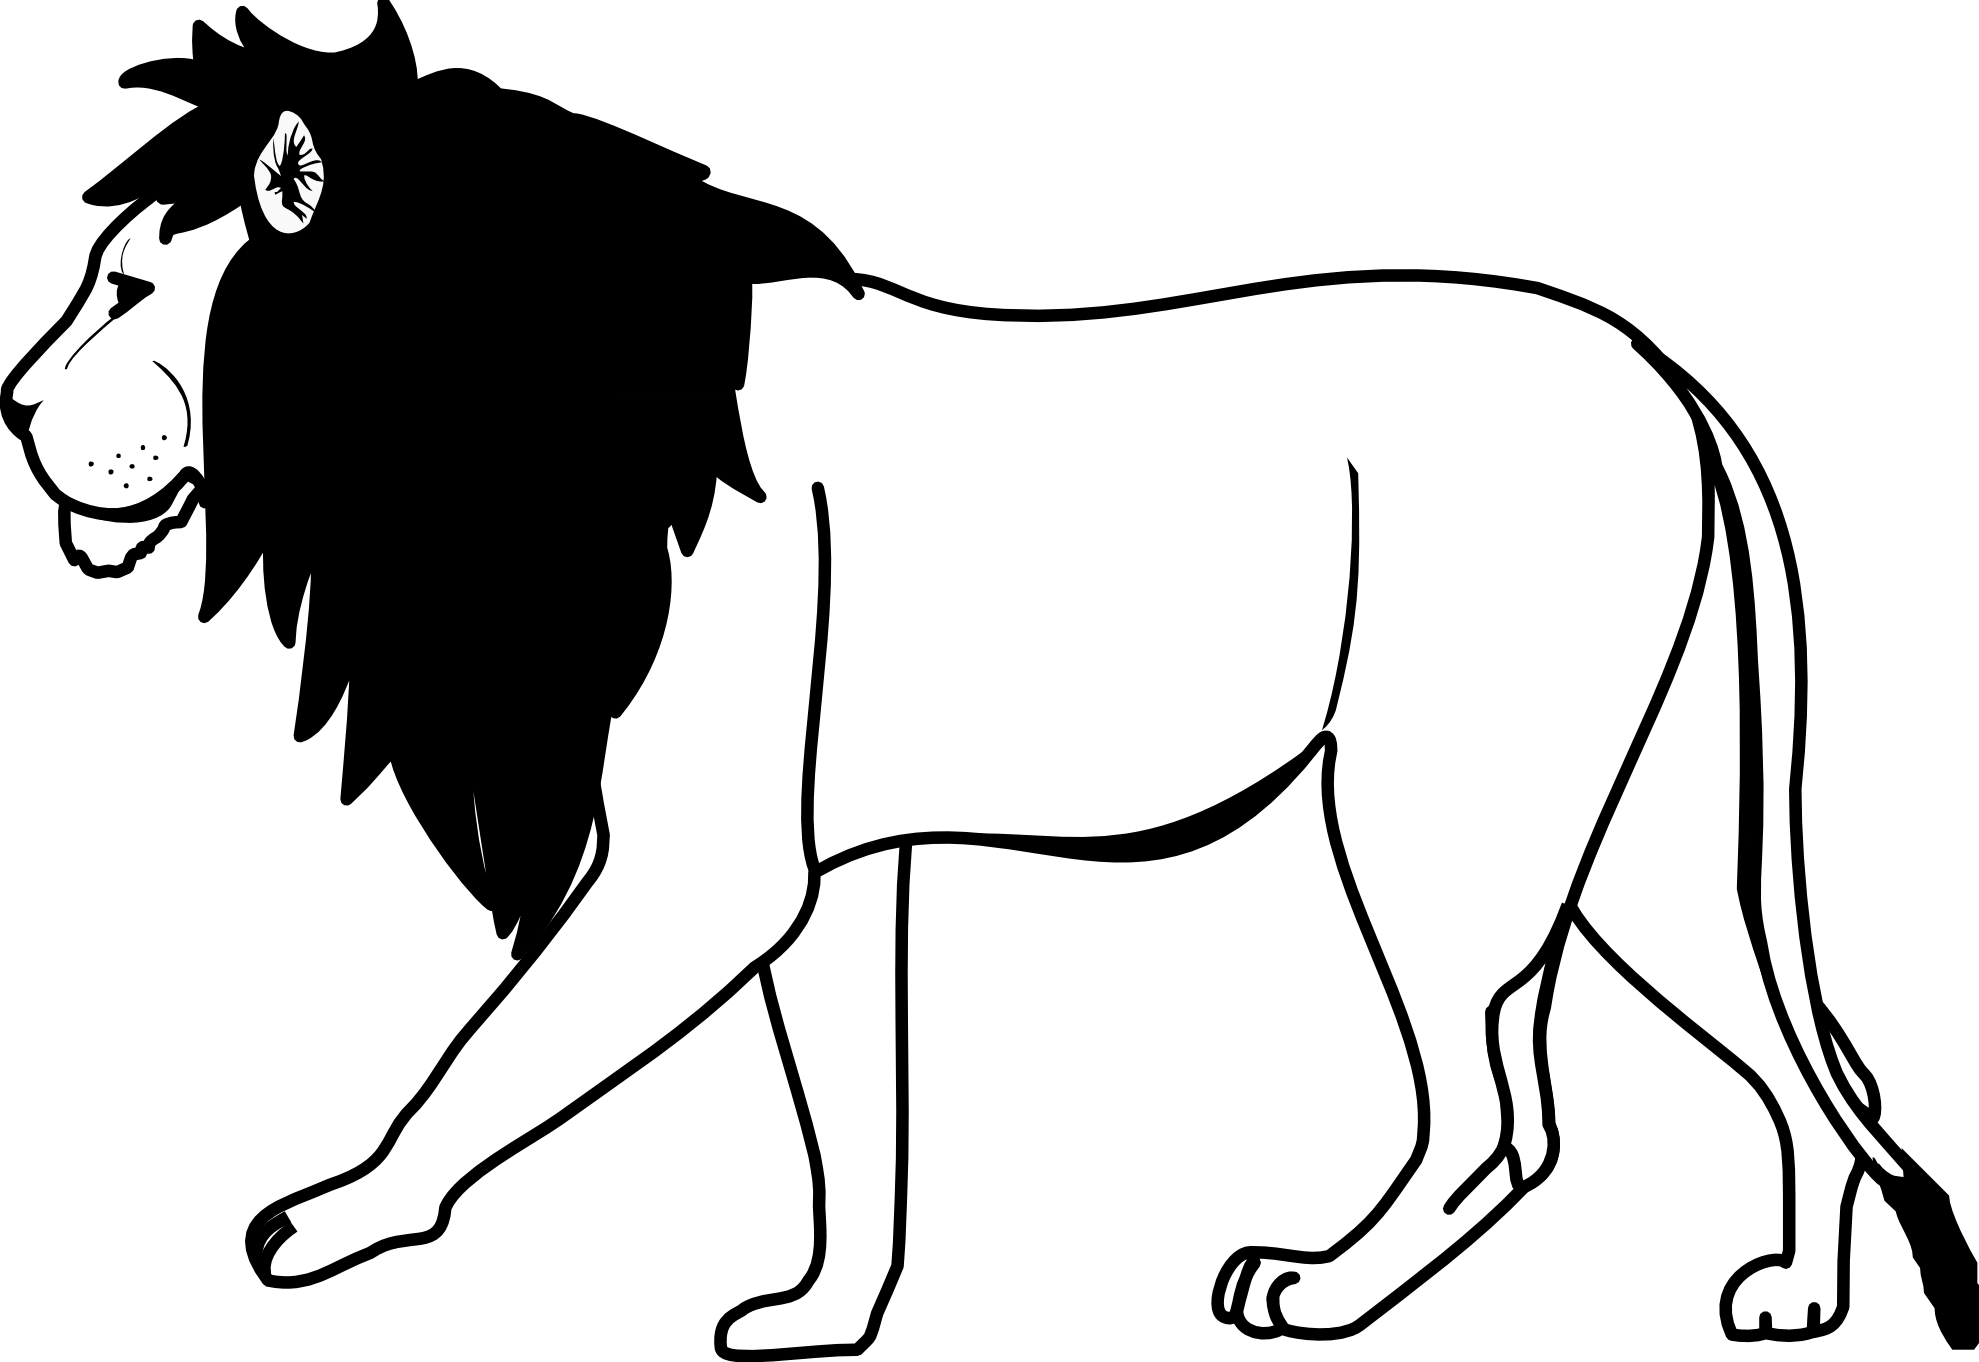 Drawing lions. Images for black and